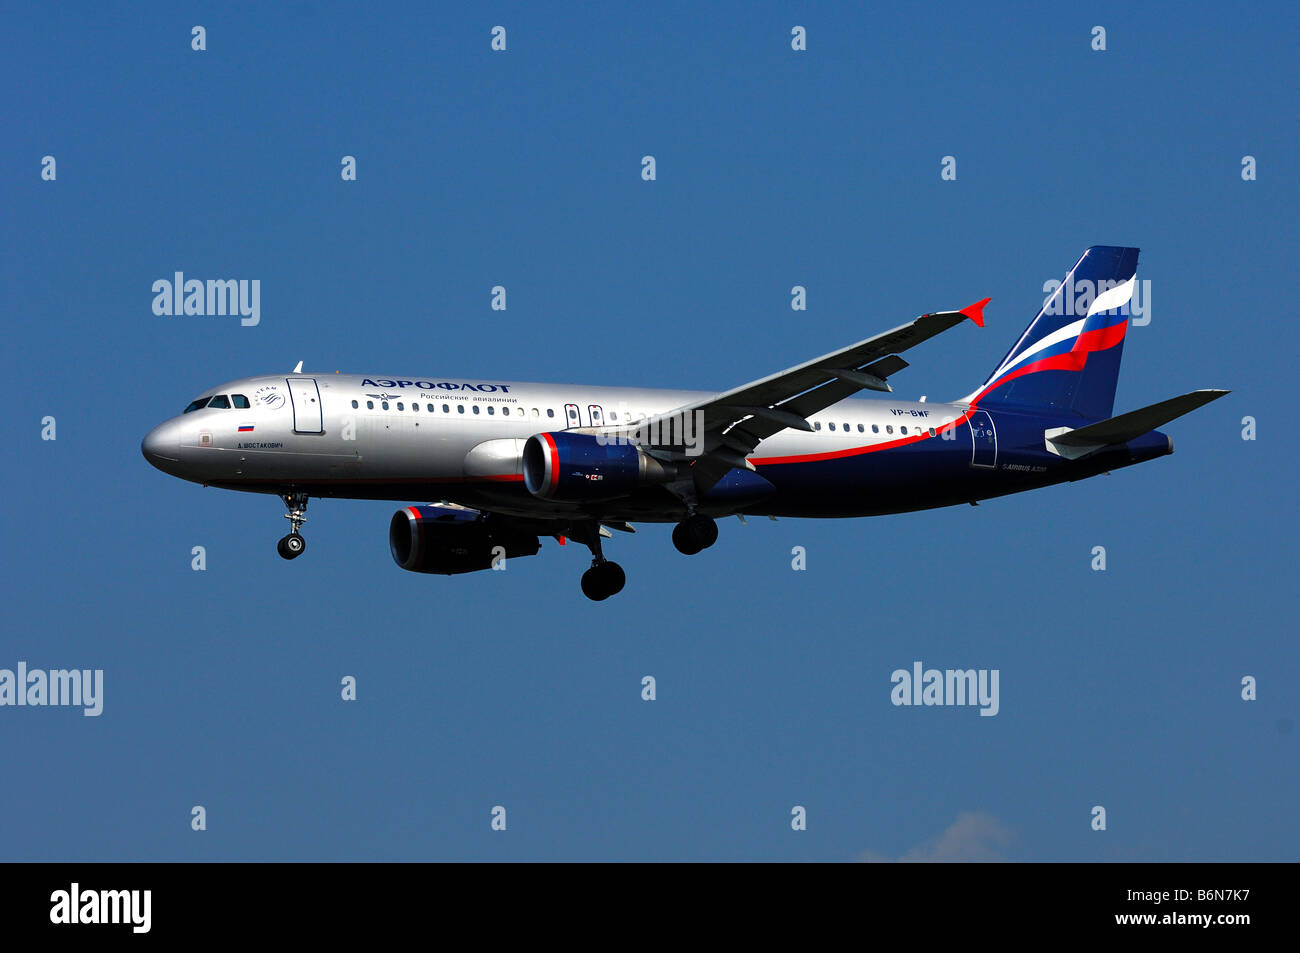 Aircraft Airbus A320-214, Registration VP BWF, Aeroflot Russia, year of manufacture 2003 - Stock Image